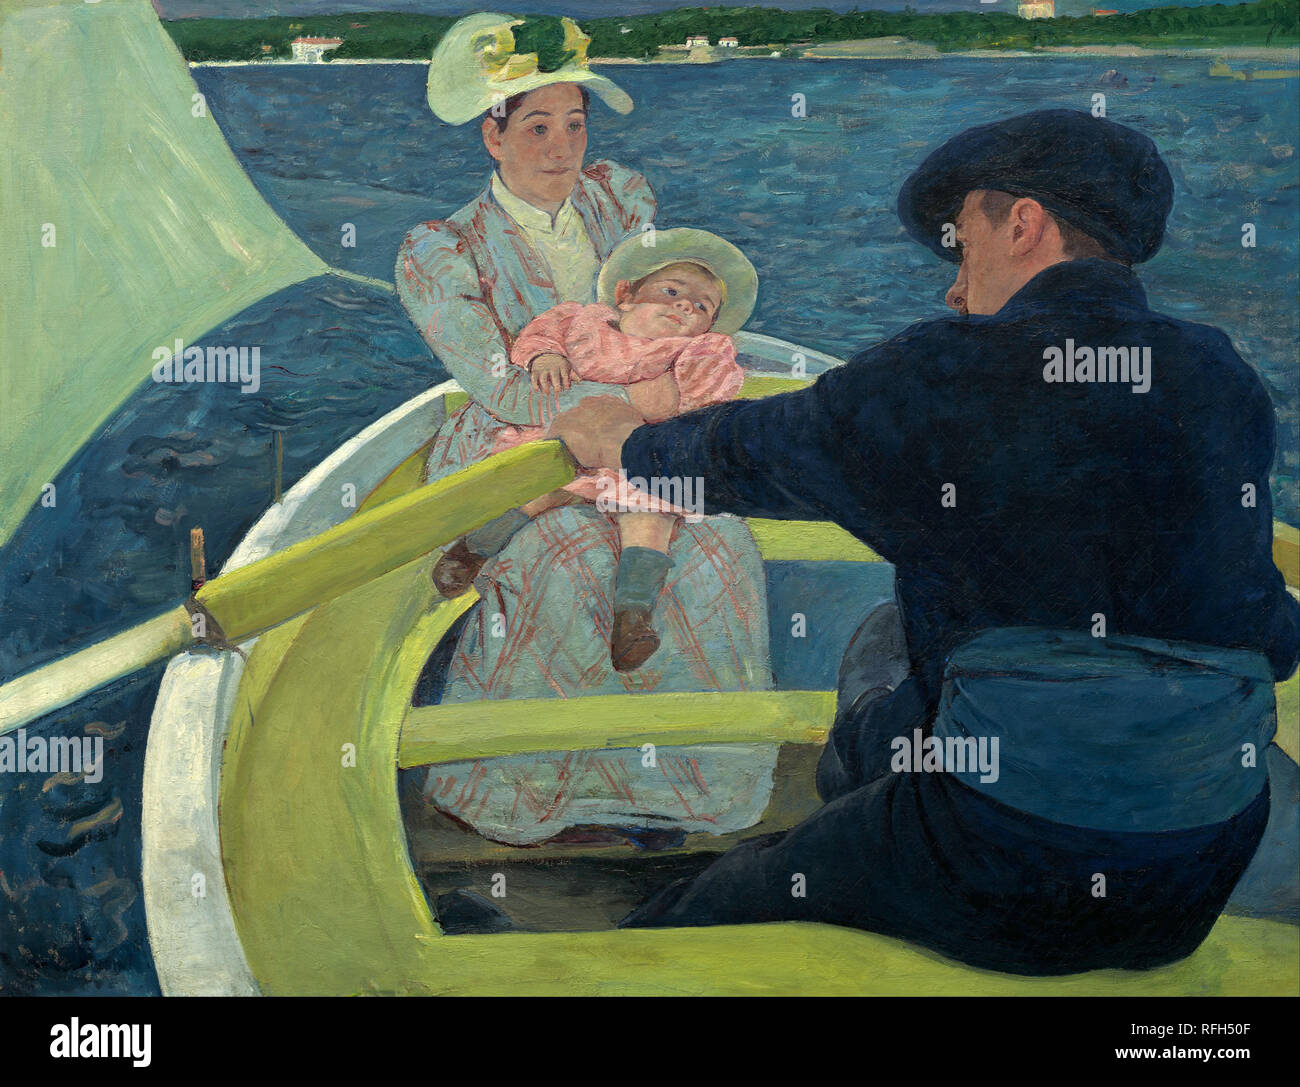 The Boating Party. Date/Period: 1893 - 1894. Painting. Oil on canvas. Height: 900 mm (35.43 in); Width: 1,173 mm (46.18 in). Author: Mary Cassatt. CASSATT, MARY. CASSAT, MARY. Stock Photo